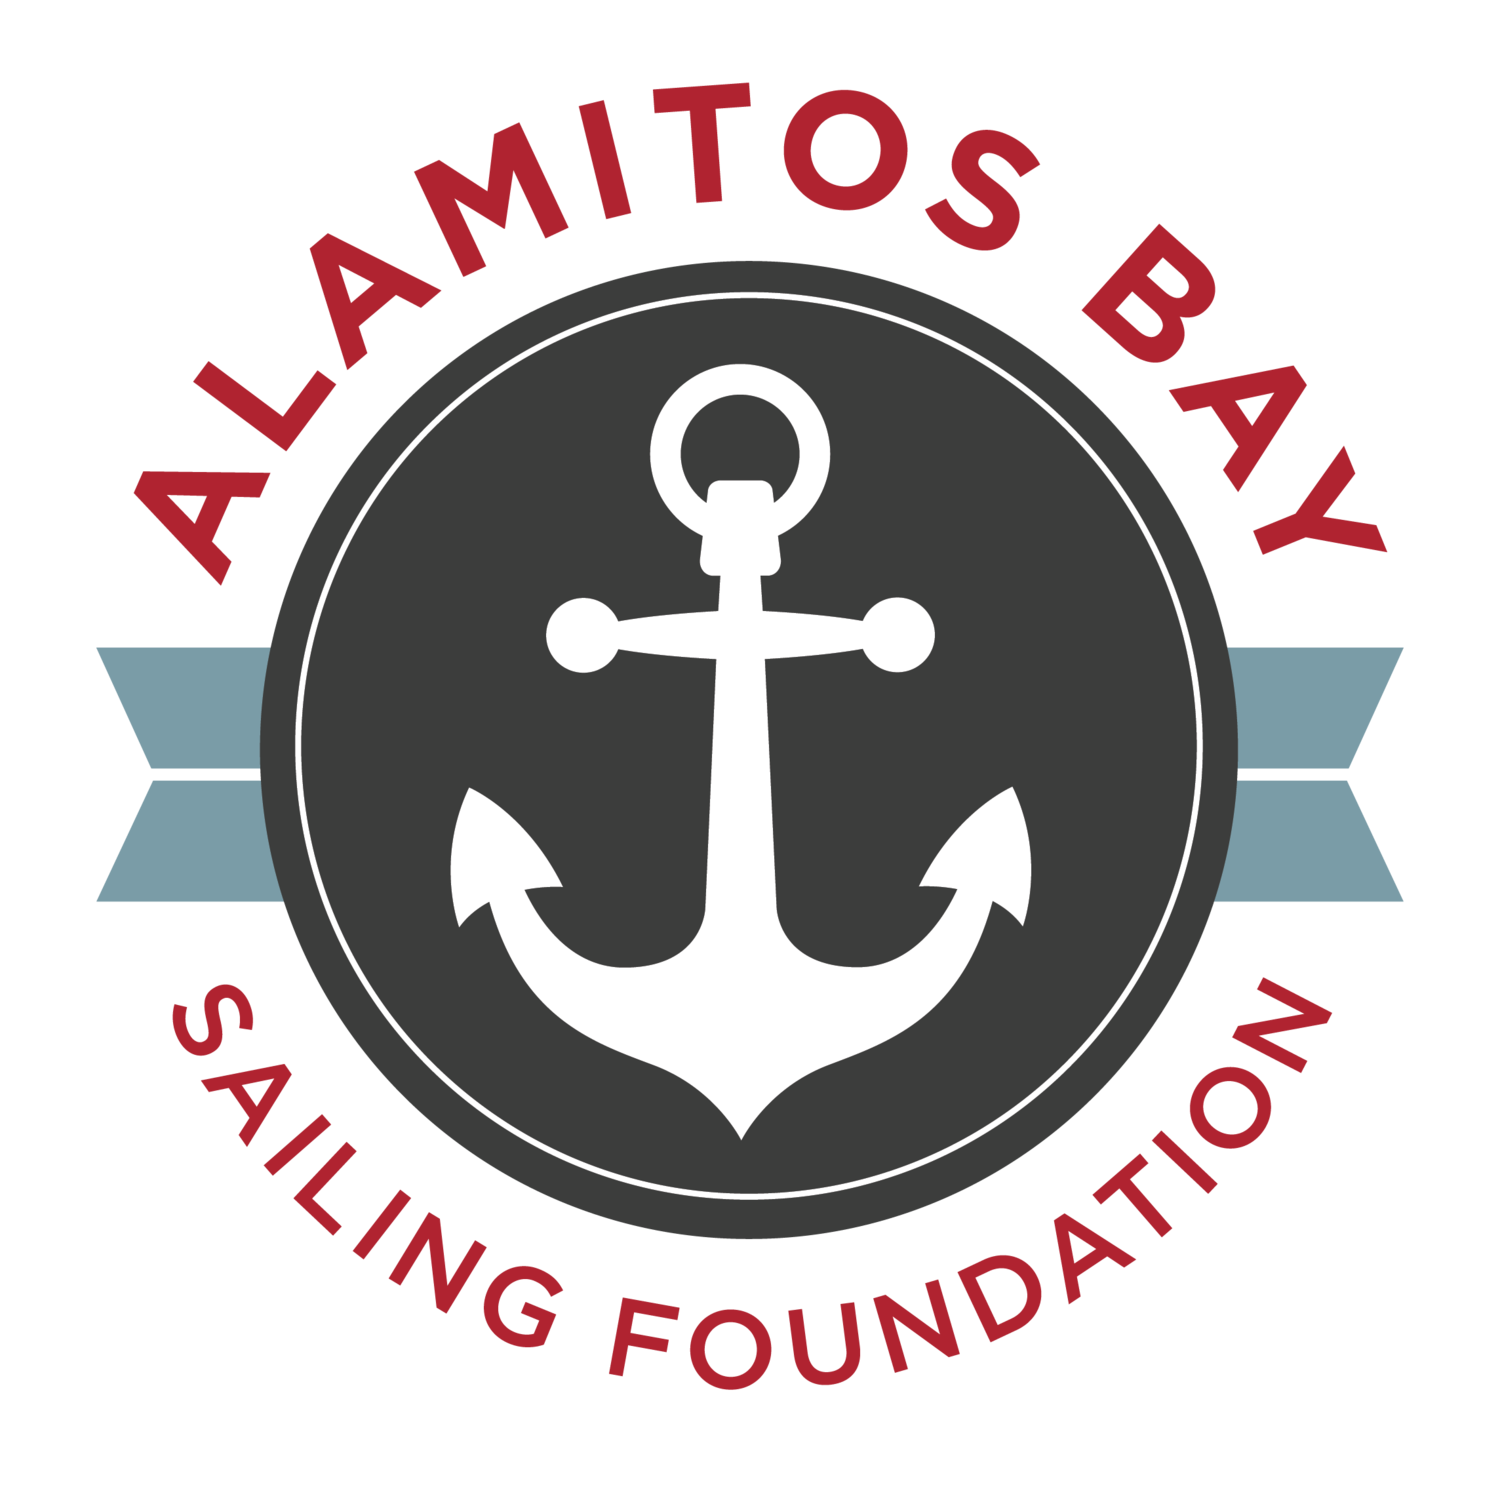 Alamitos_logos_Final_Alamitos_Logo_color.png